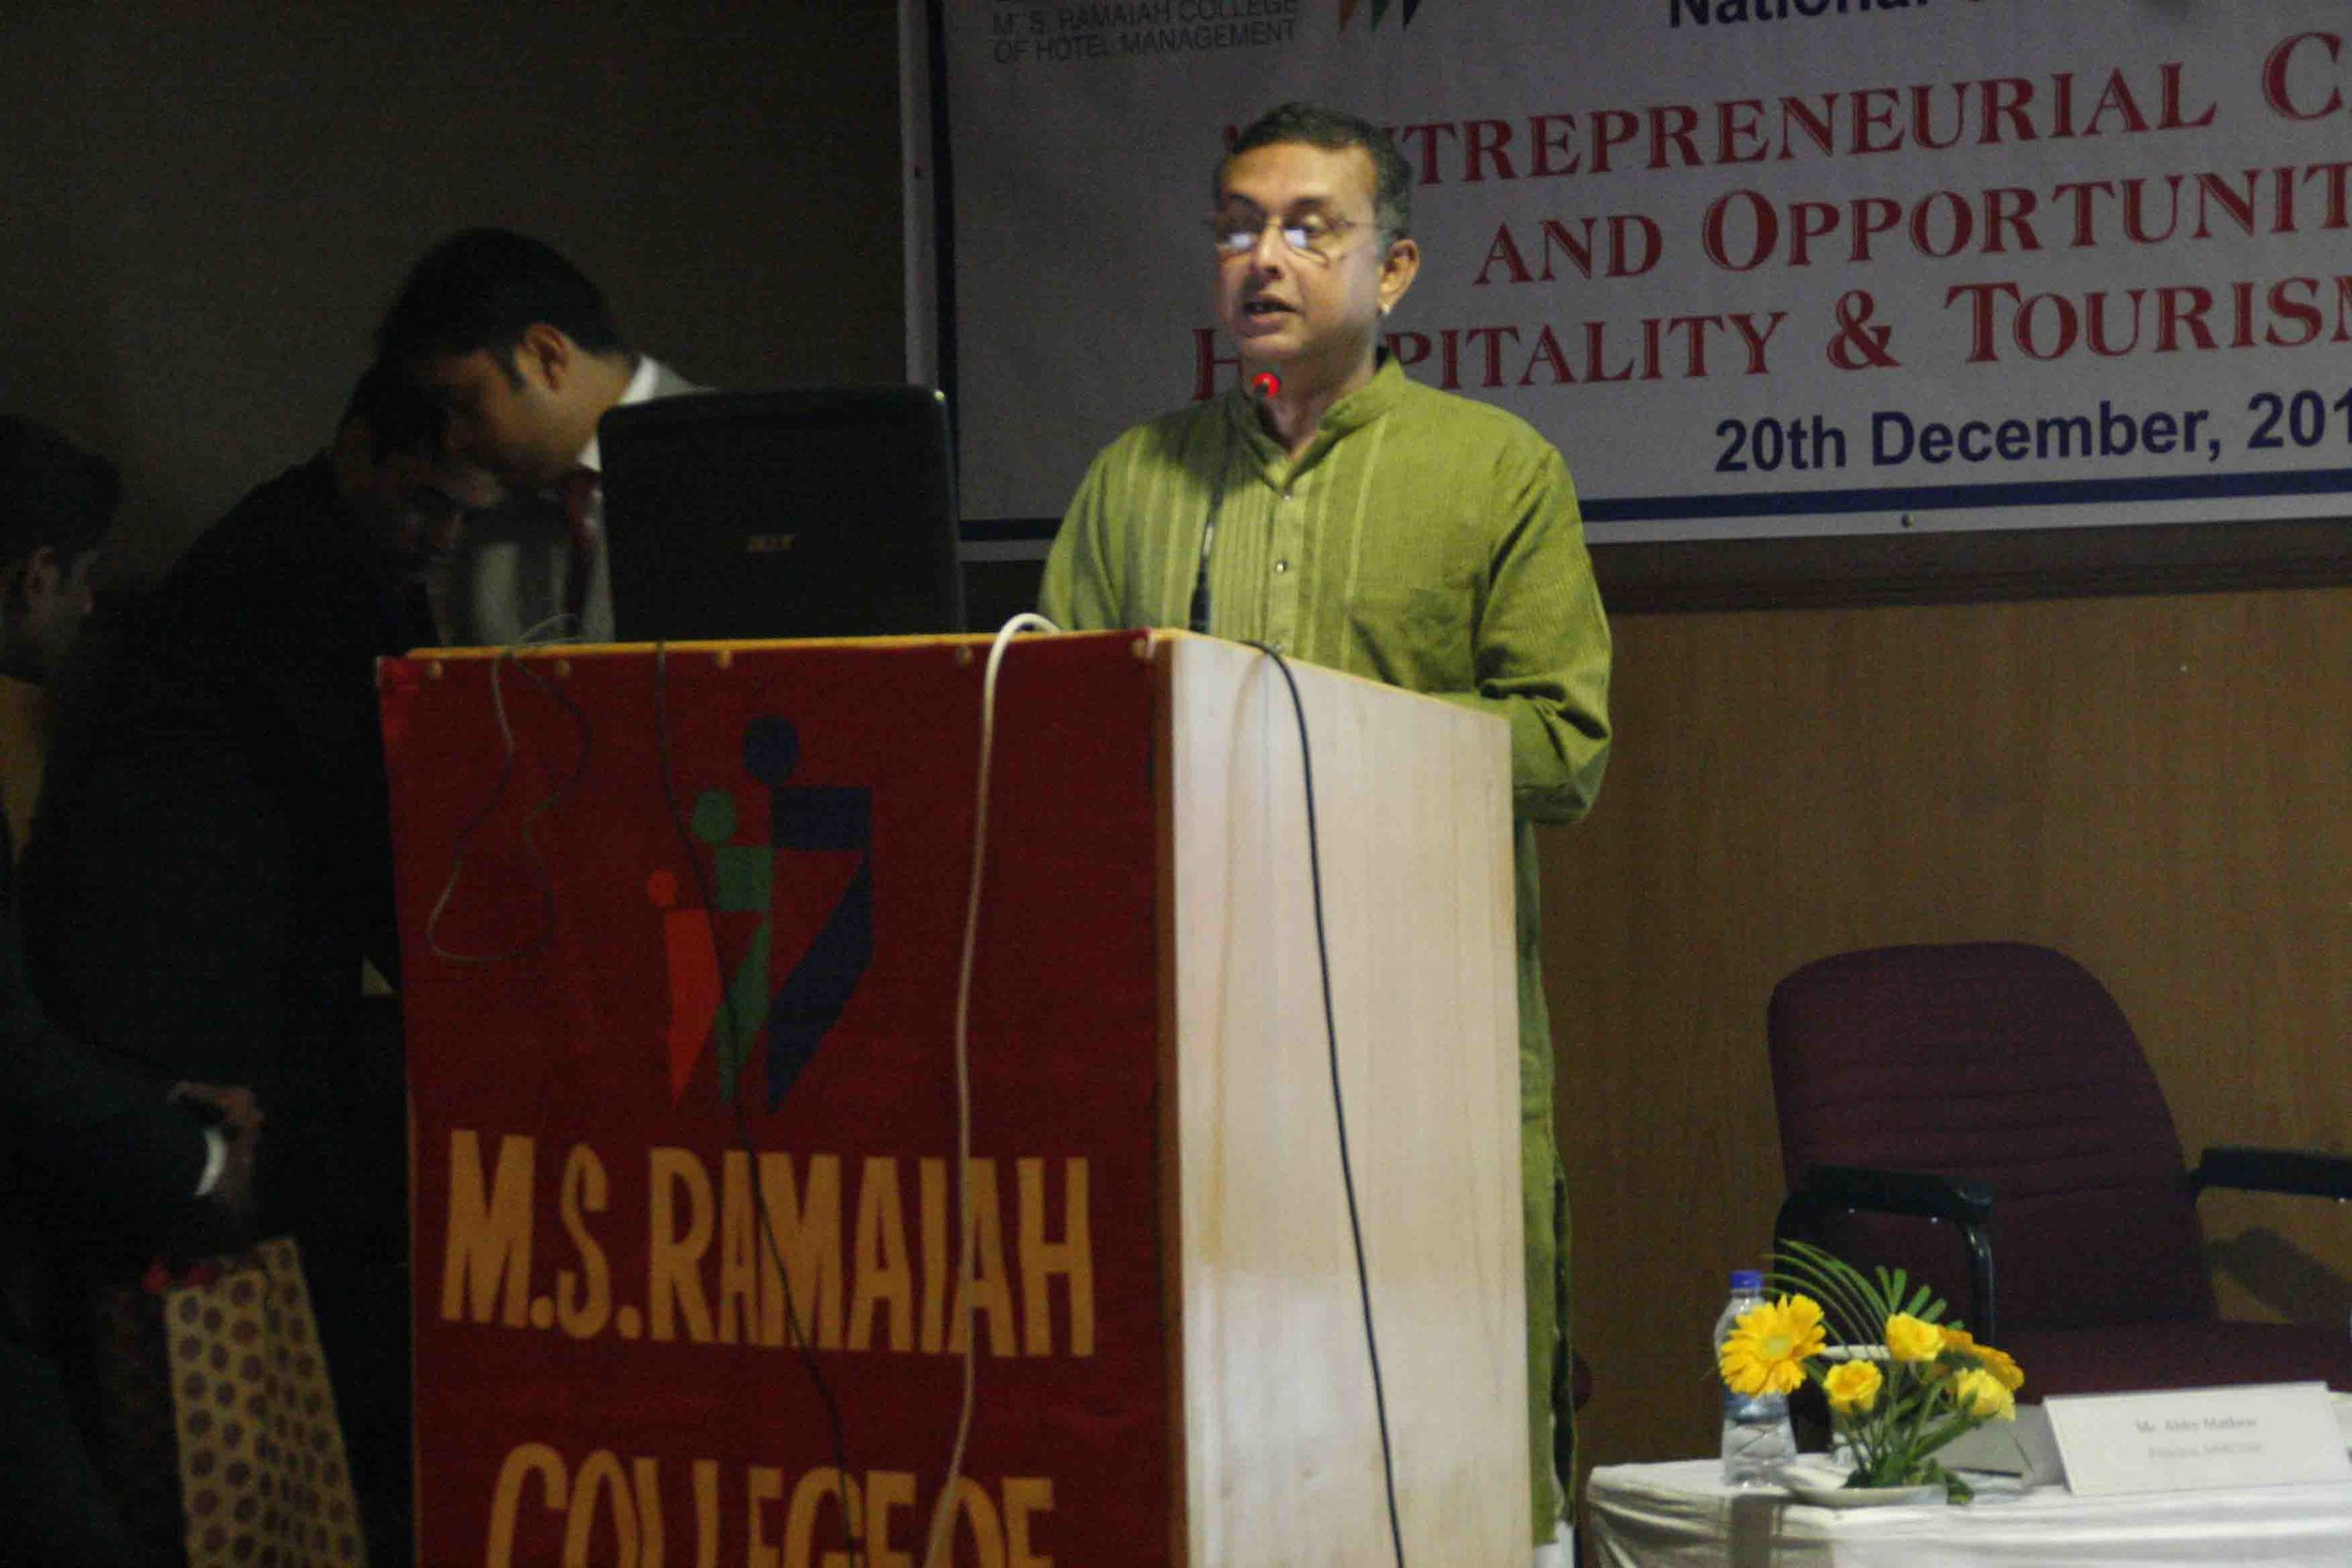 national tourism conference at ramaya college, bangalore, 2014